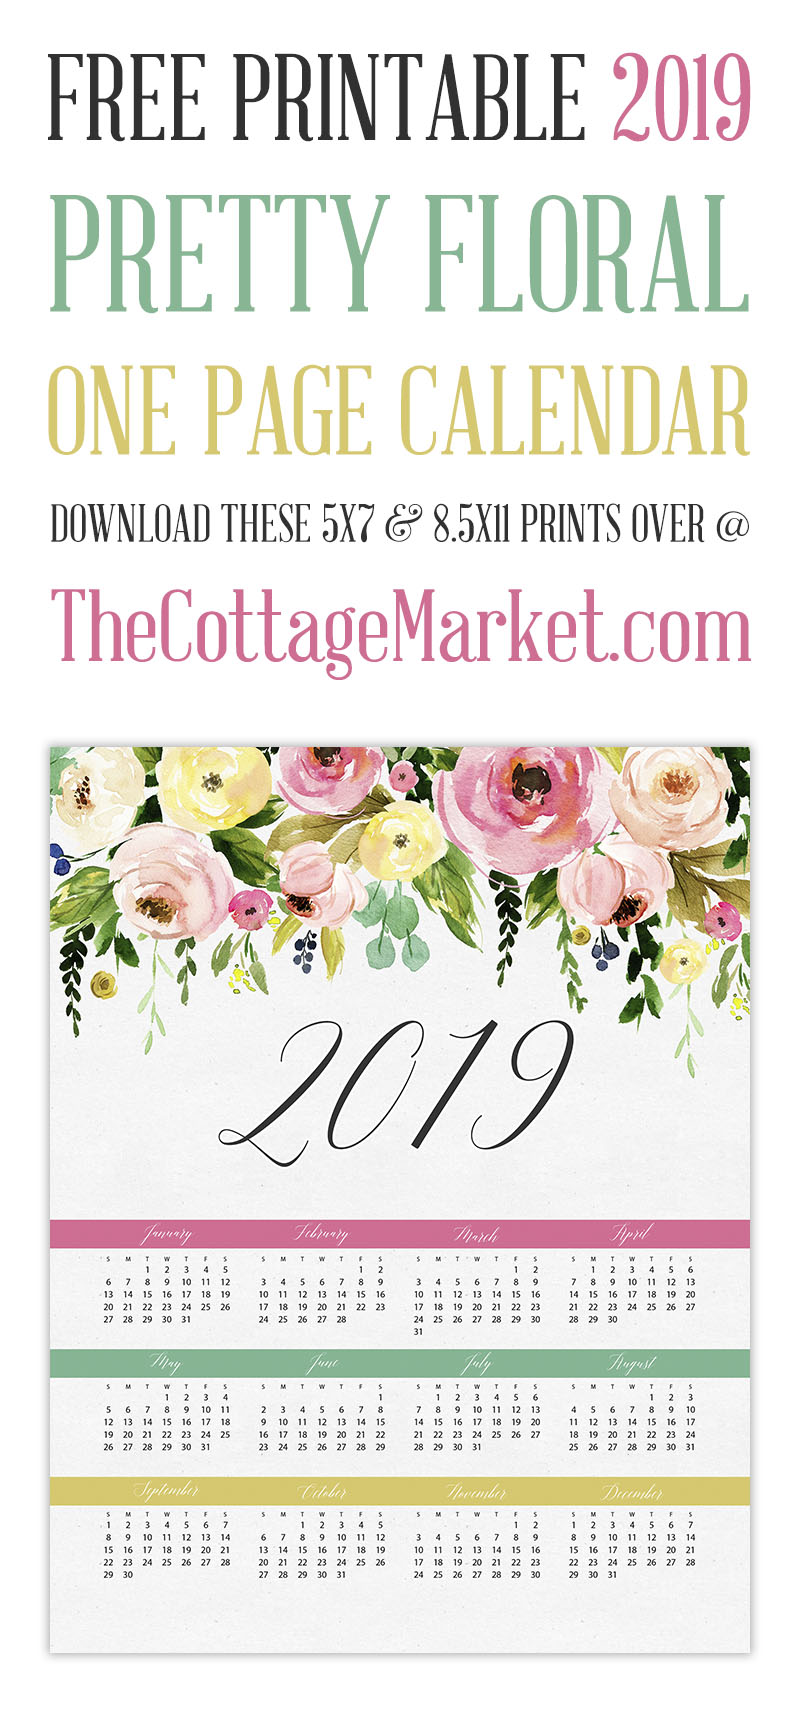 Free Printable 2019 Pretty Floral One Page Calendar - The